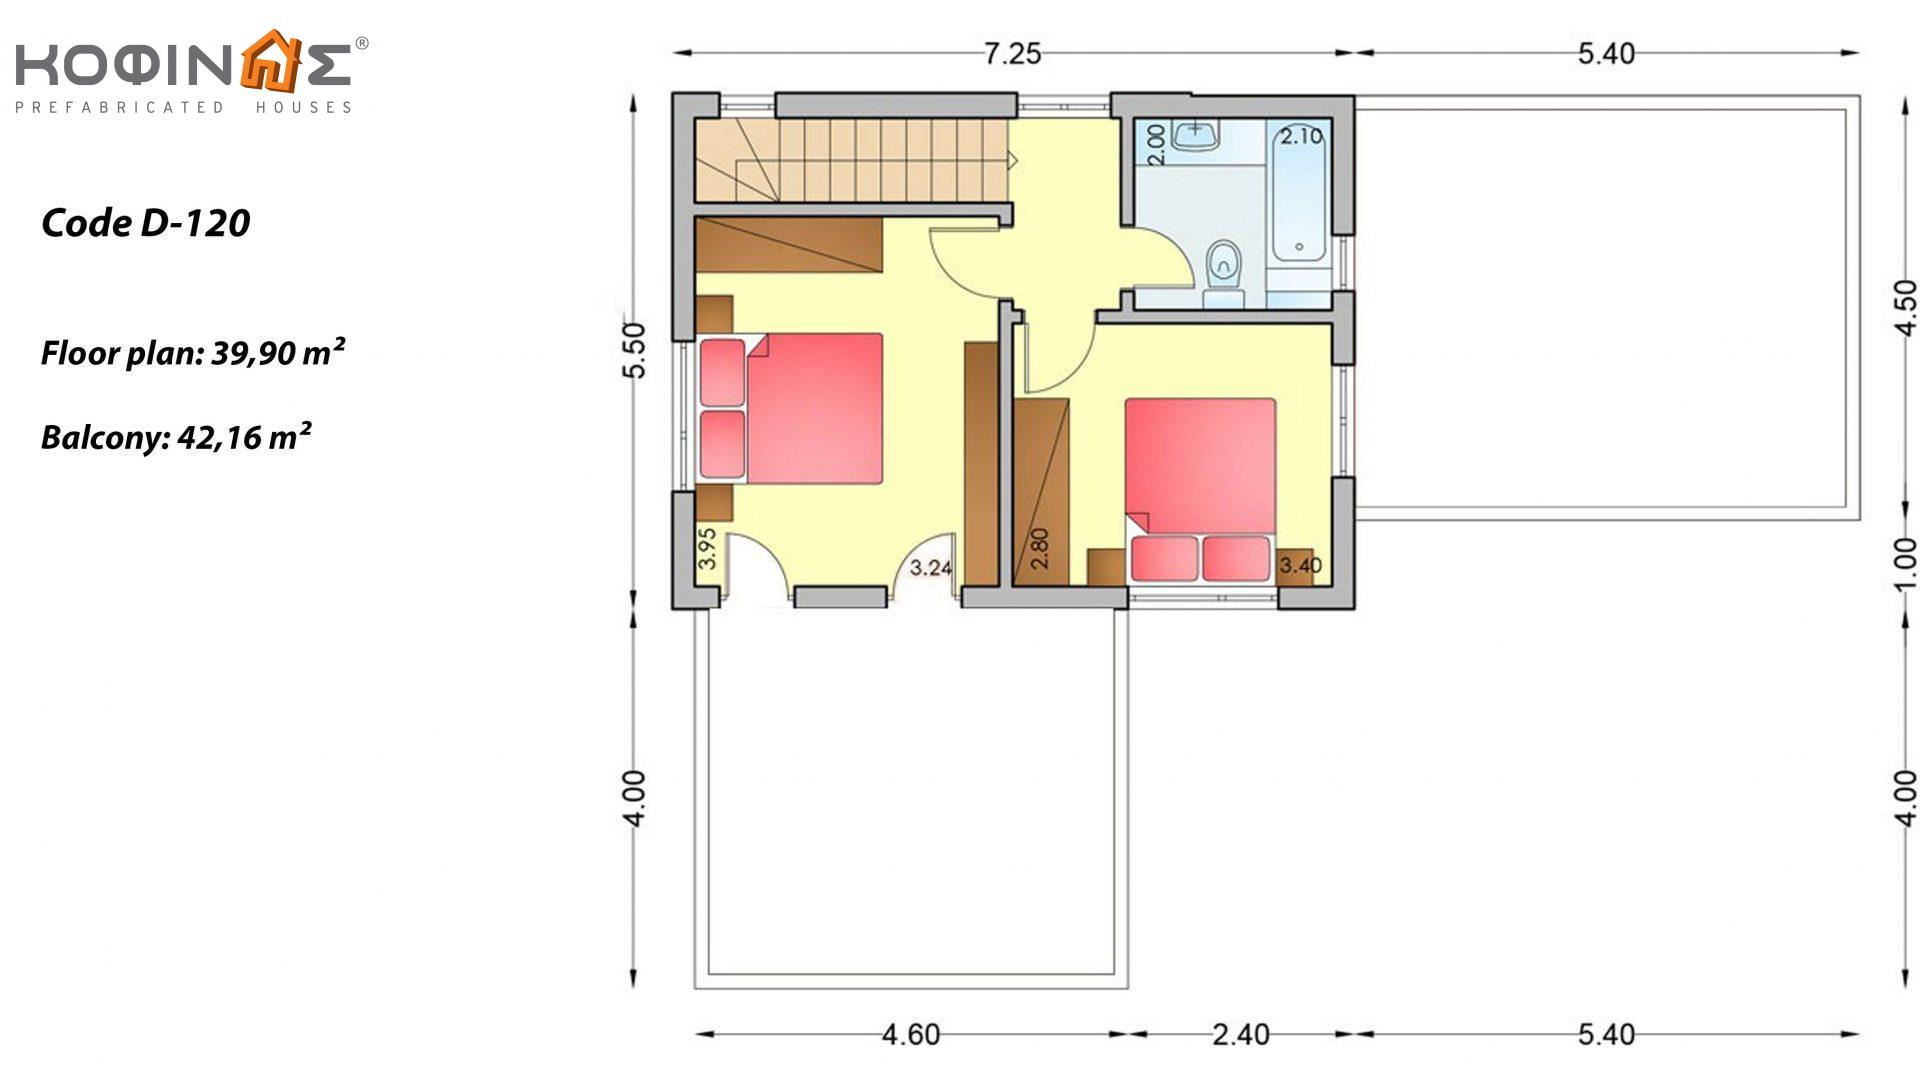 2-story house D-120, total surface of 120,20 m²,roofed areas 18,00 m²,balconies 42,16 m²